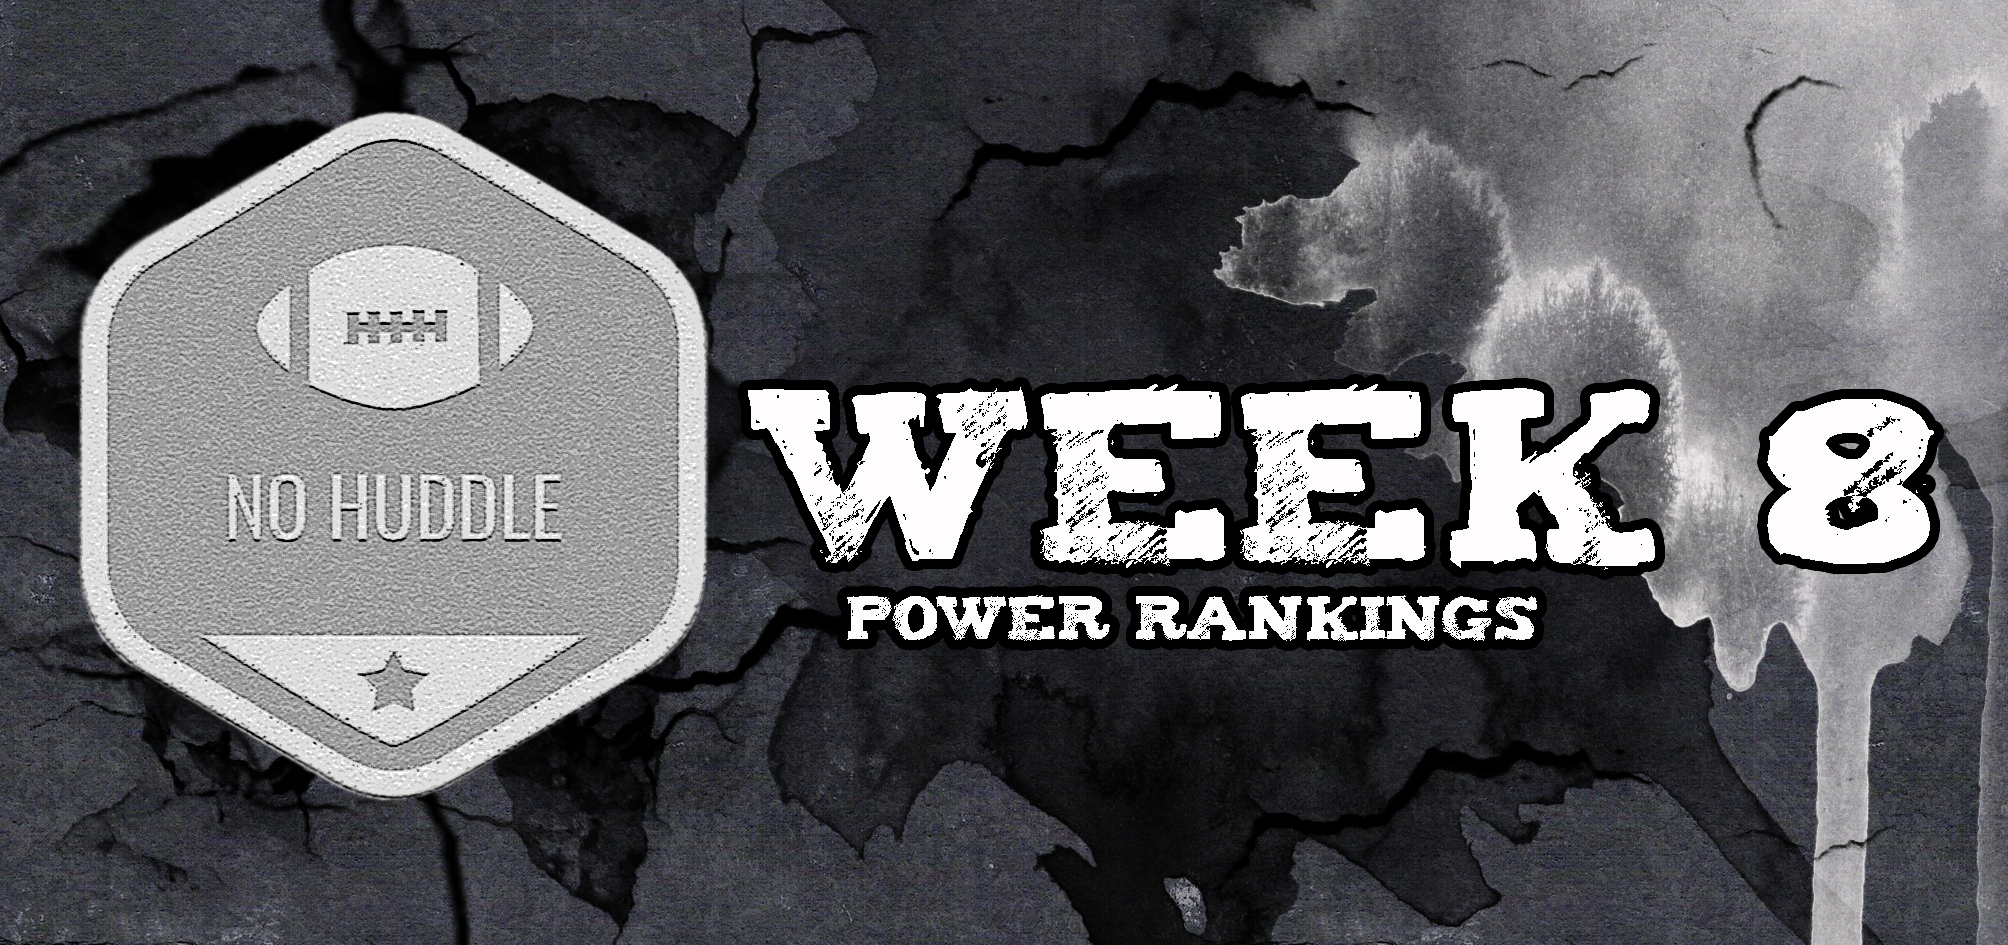 Power Rankings: Semana 8